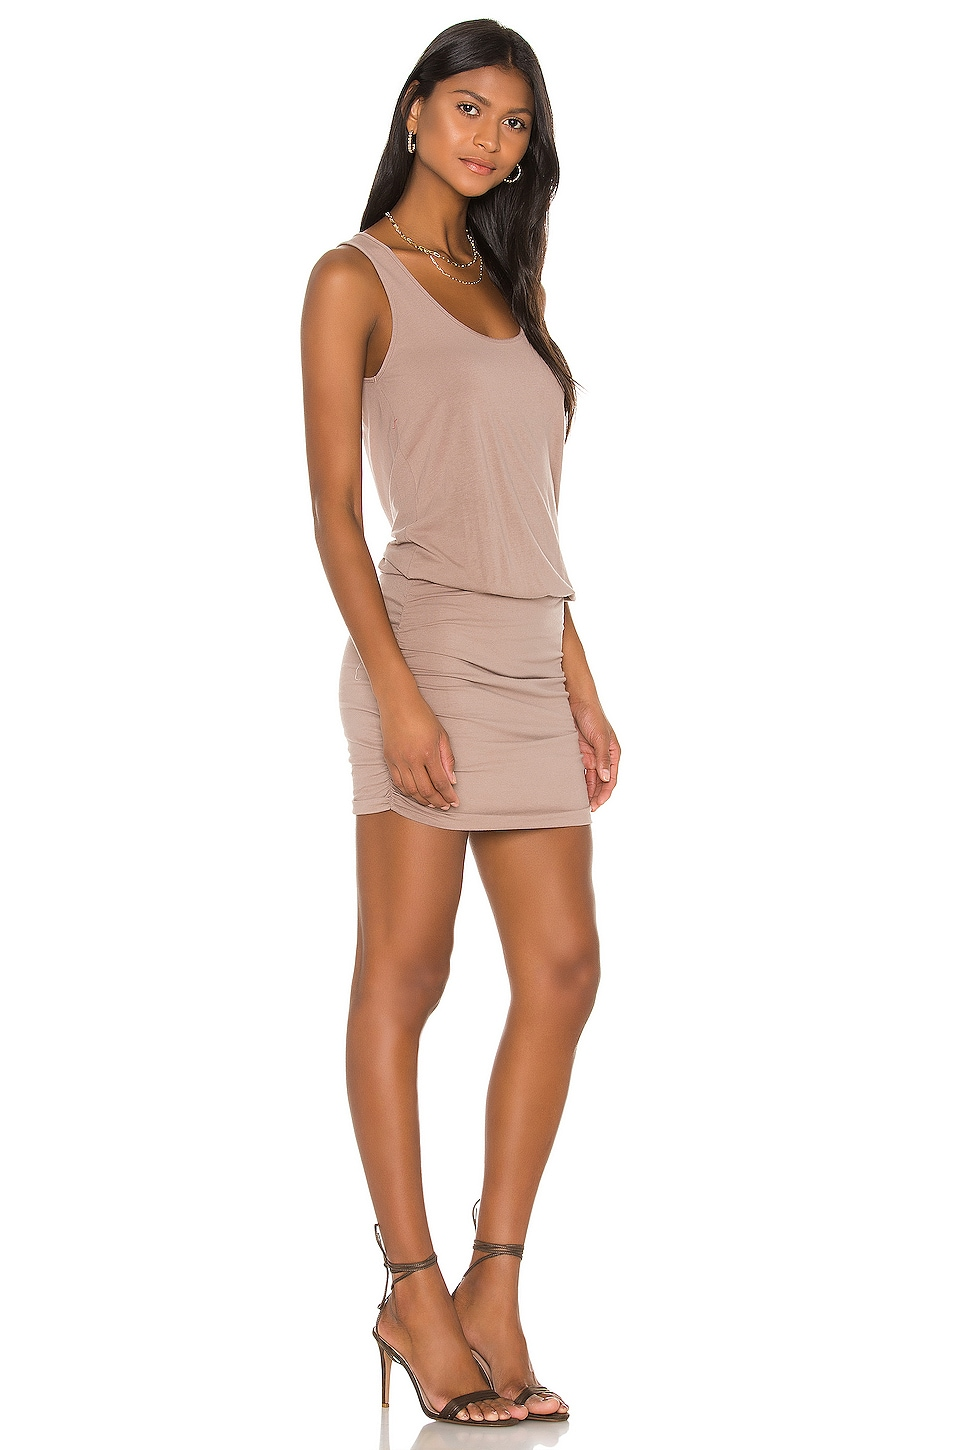 Draped Modal Jersey Mini Dress, view 2, click to view large image.